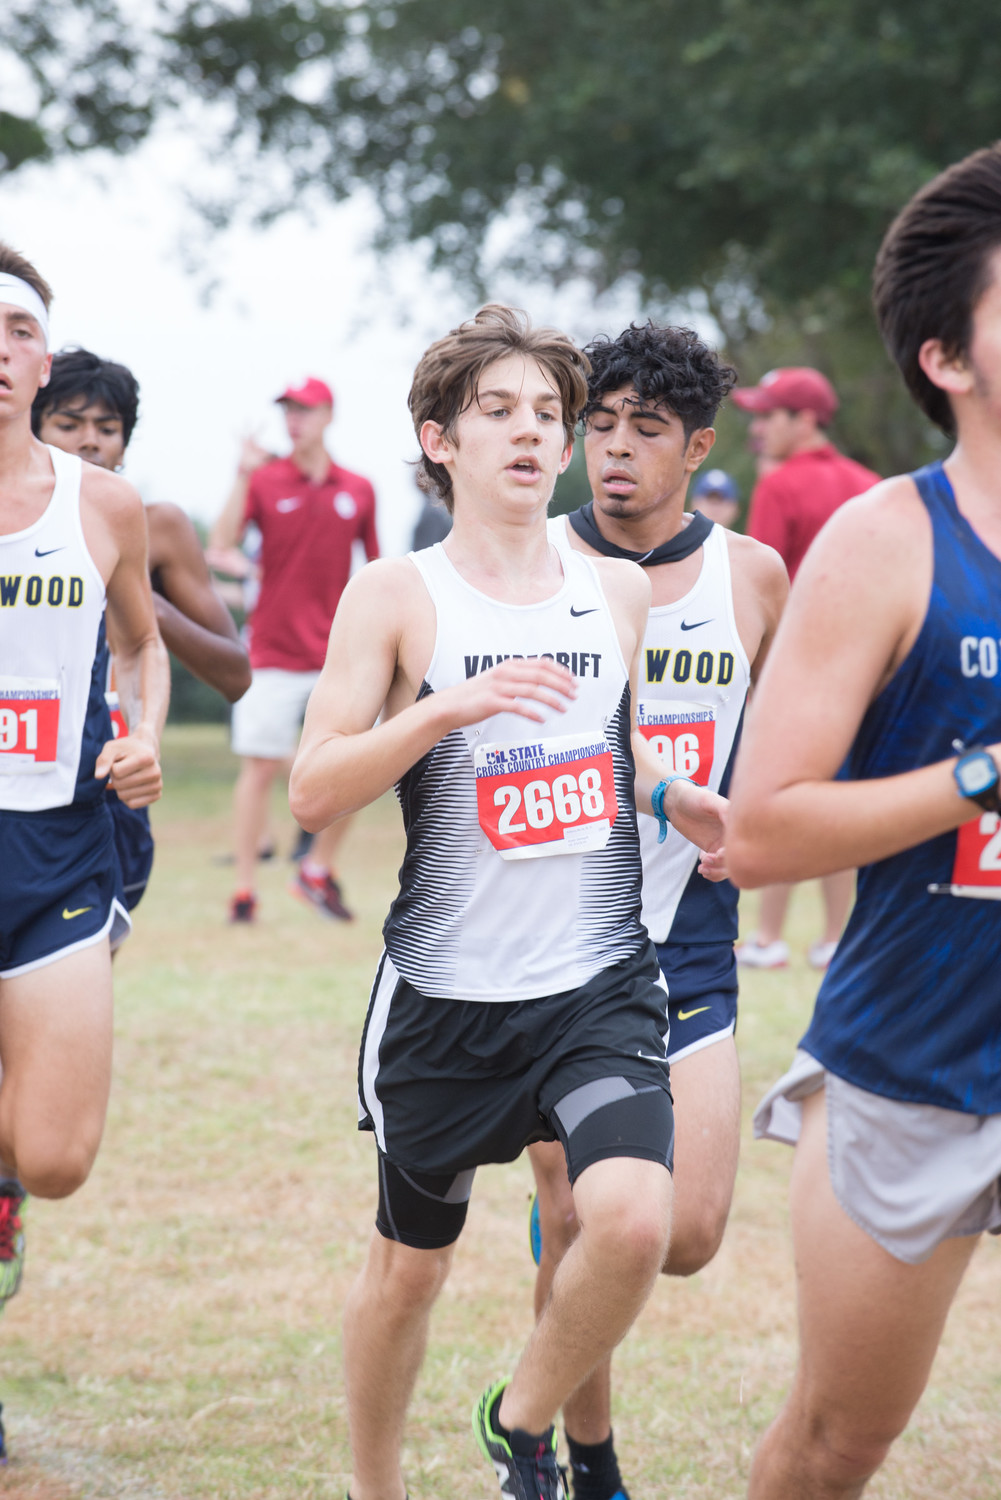 Anthony Monte of Vandegrift High School runs in the UIL Cross Country State Meet at Old Settlers Park in Round Rock, Texas, on Saturday, Nov. 4, 2017. Monte finished the Class 6A boys race with an overall time of 16:26.07.